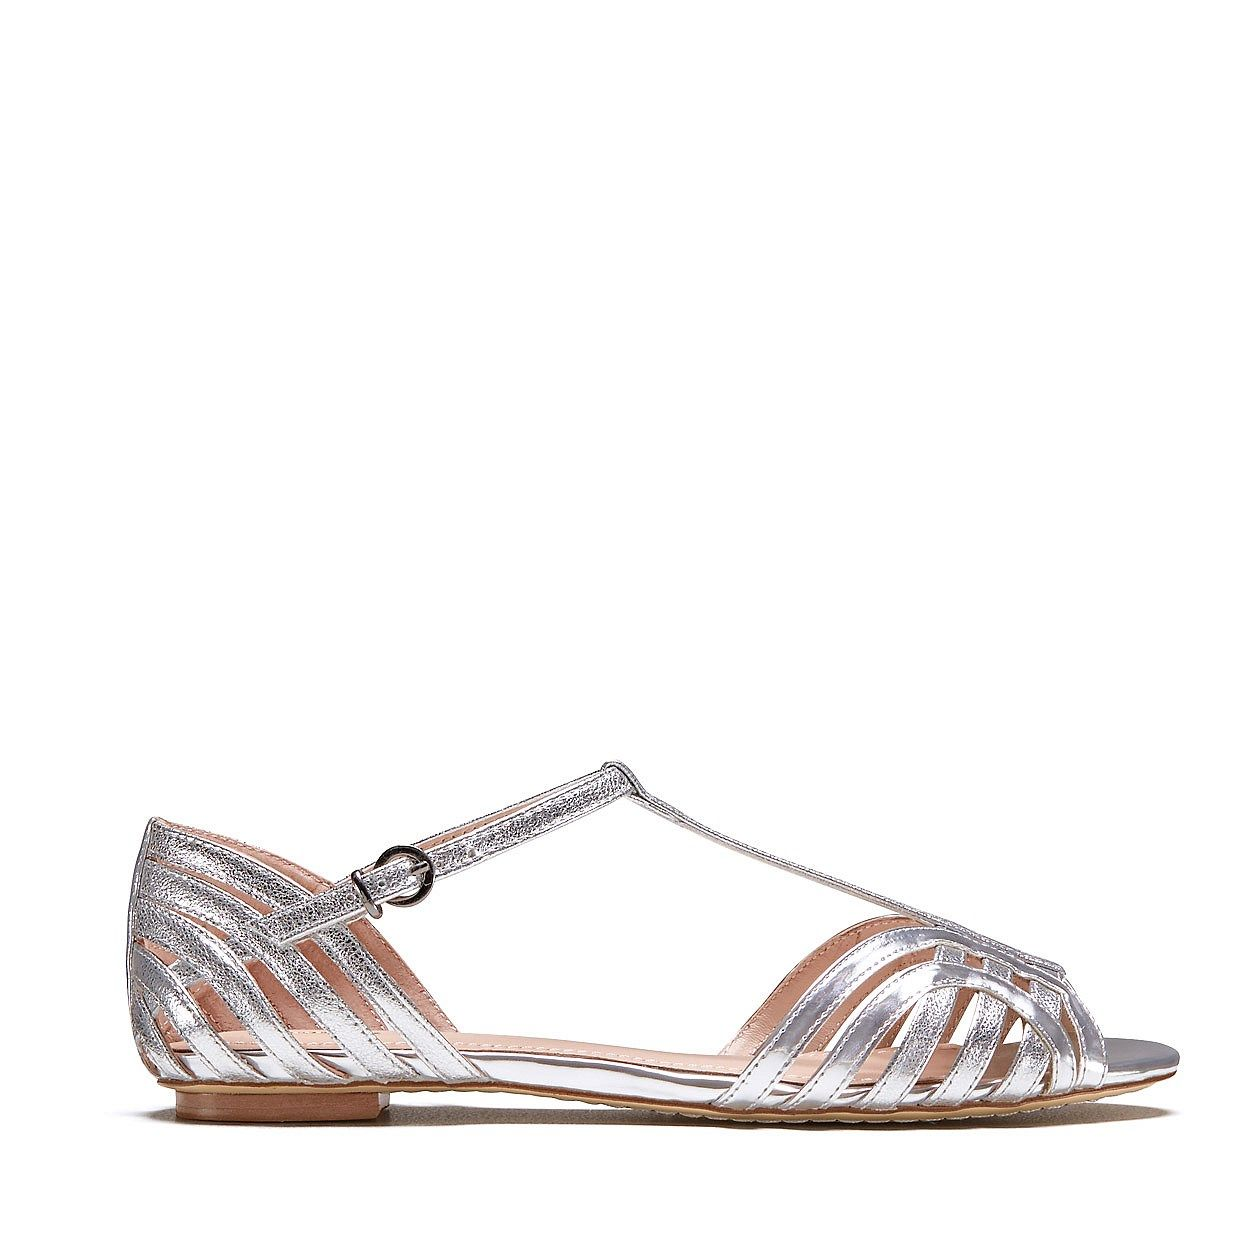 Abacus Sandal A Style Staple In New Season Metallic Sandals